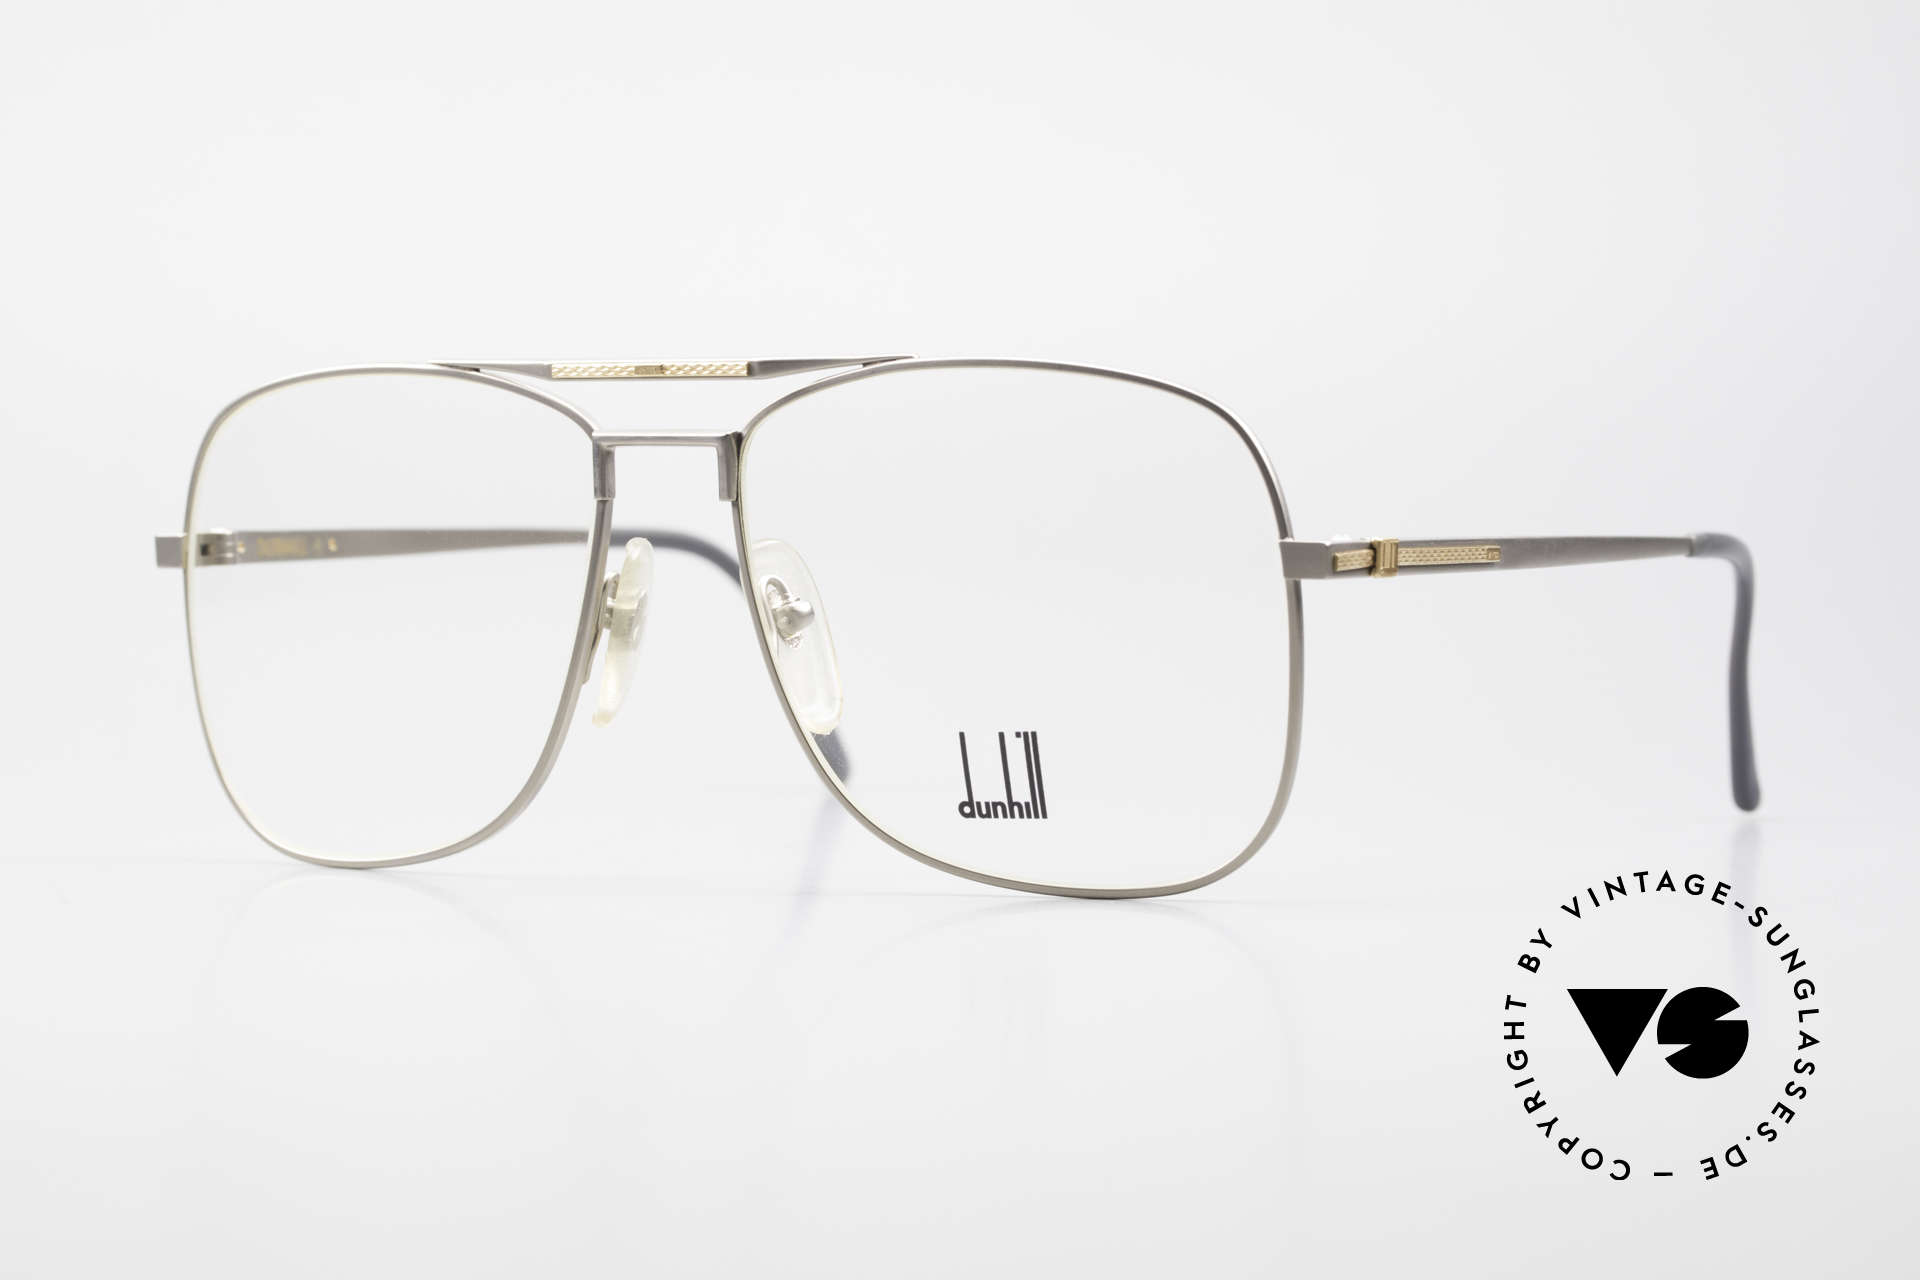 Dunhill 6038 18kt Gold Titanium Frame 80's, this Dunhill model is at the top of the eyewear sector, Made for Men